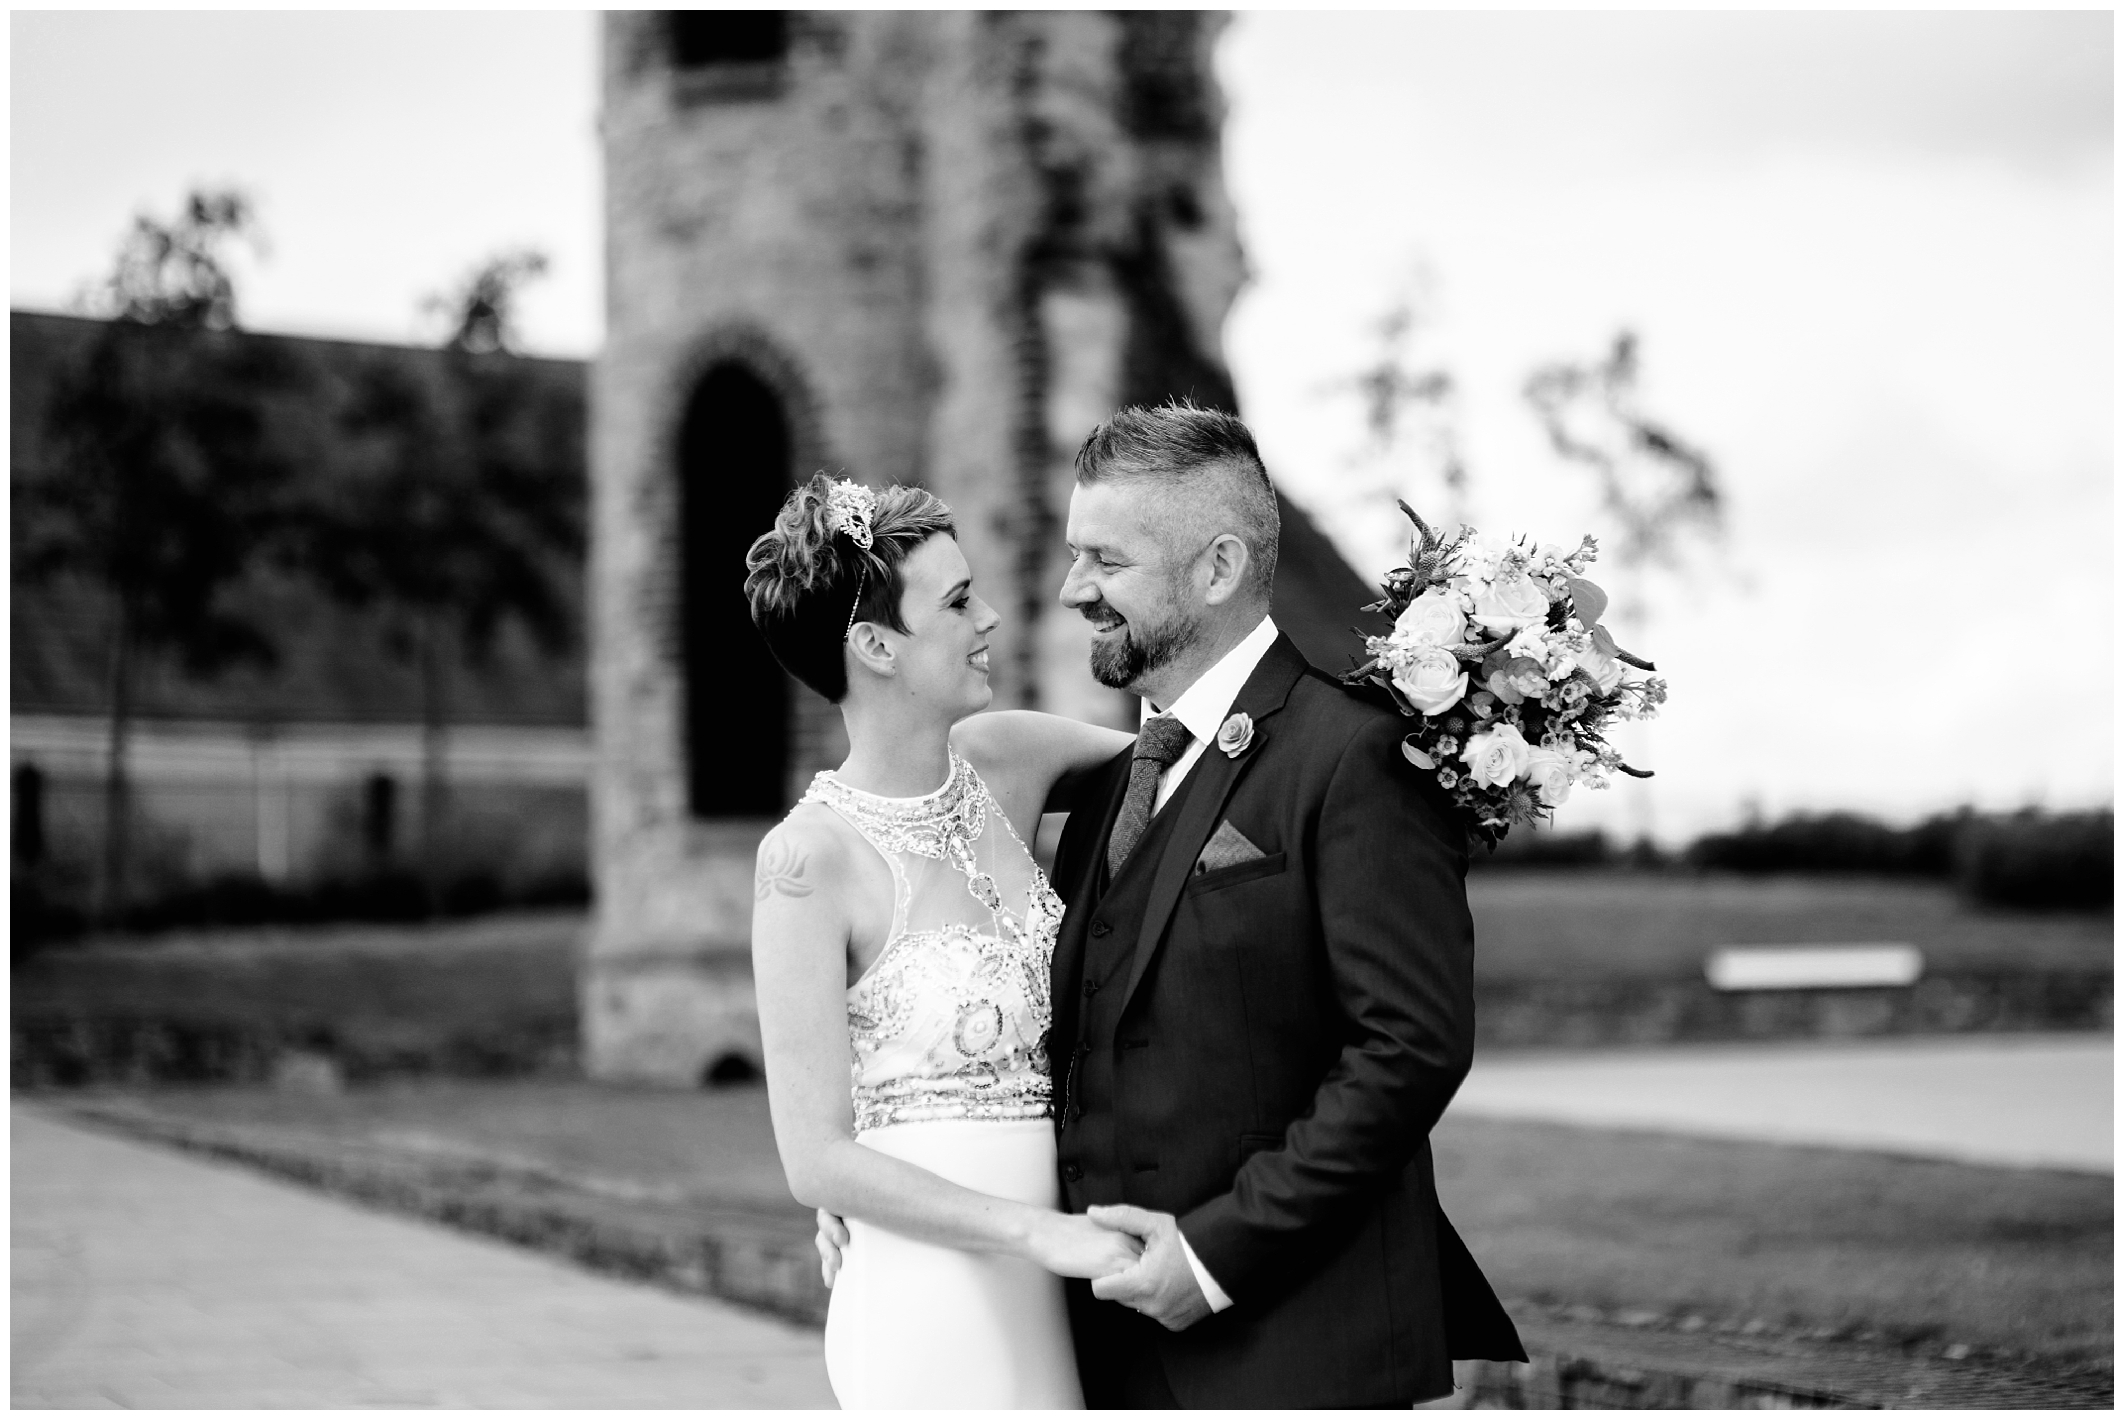 christina_stephen_hill_of_the_oneill_dungannon_wedding_jude_browne_photography_0049.jpg